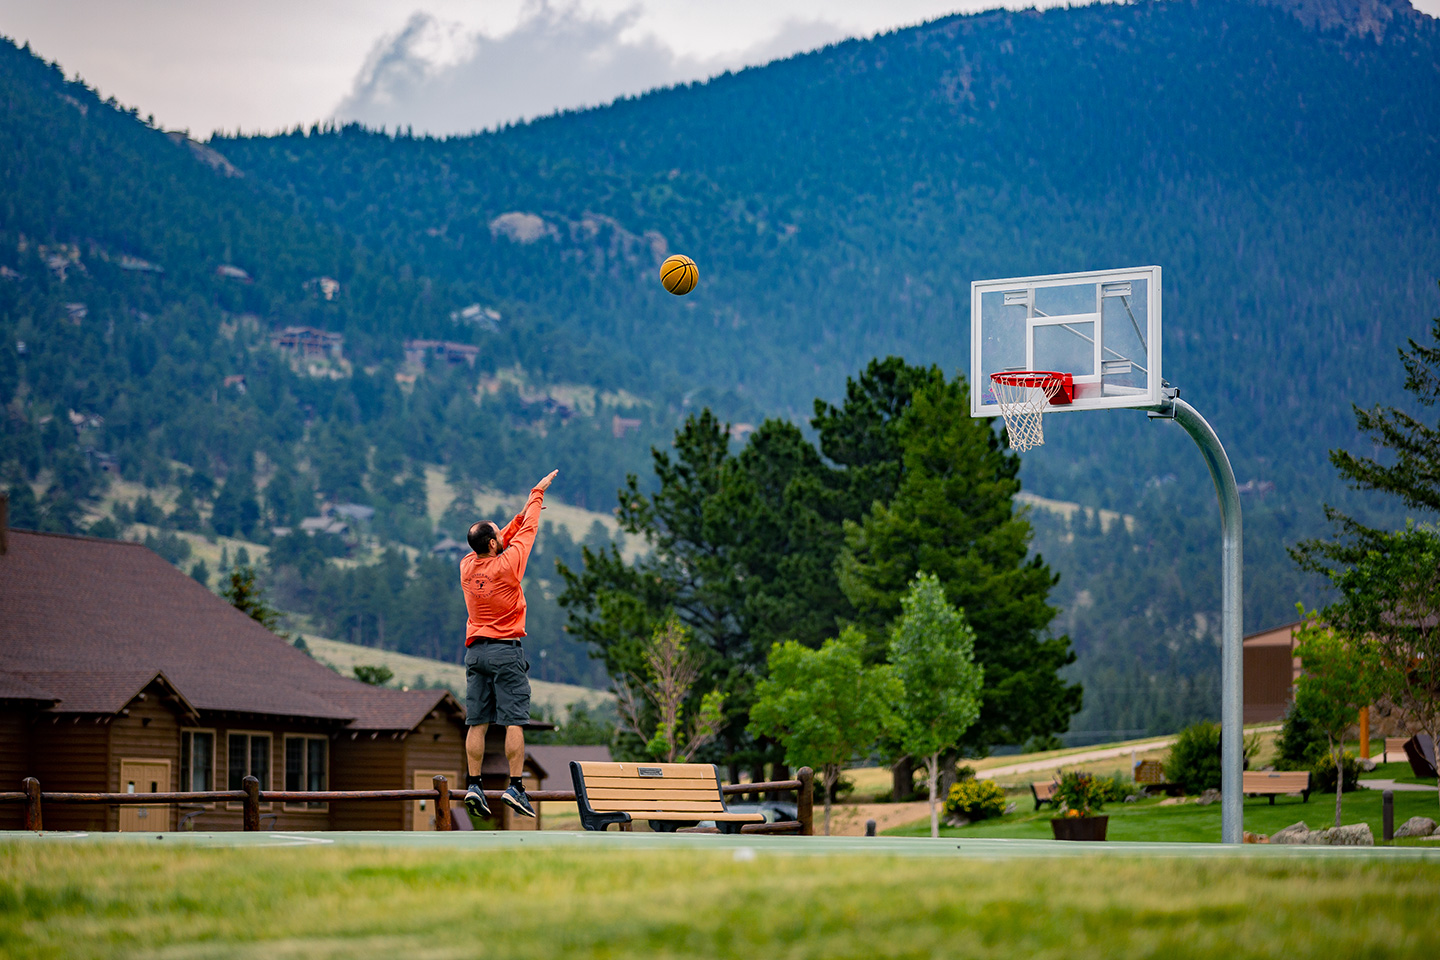 YMCA of the Rockies Summer 2021 Activities and Events – Estes Park Center and Snow Mountain Ranch, Colorado